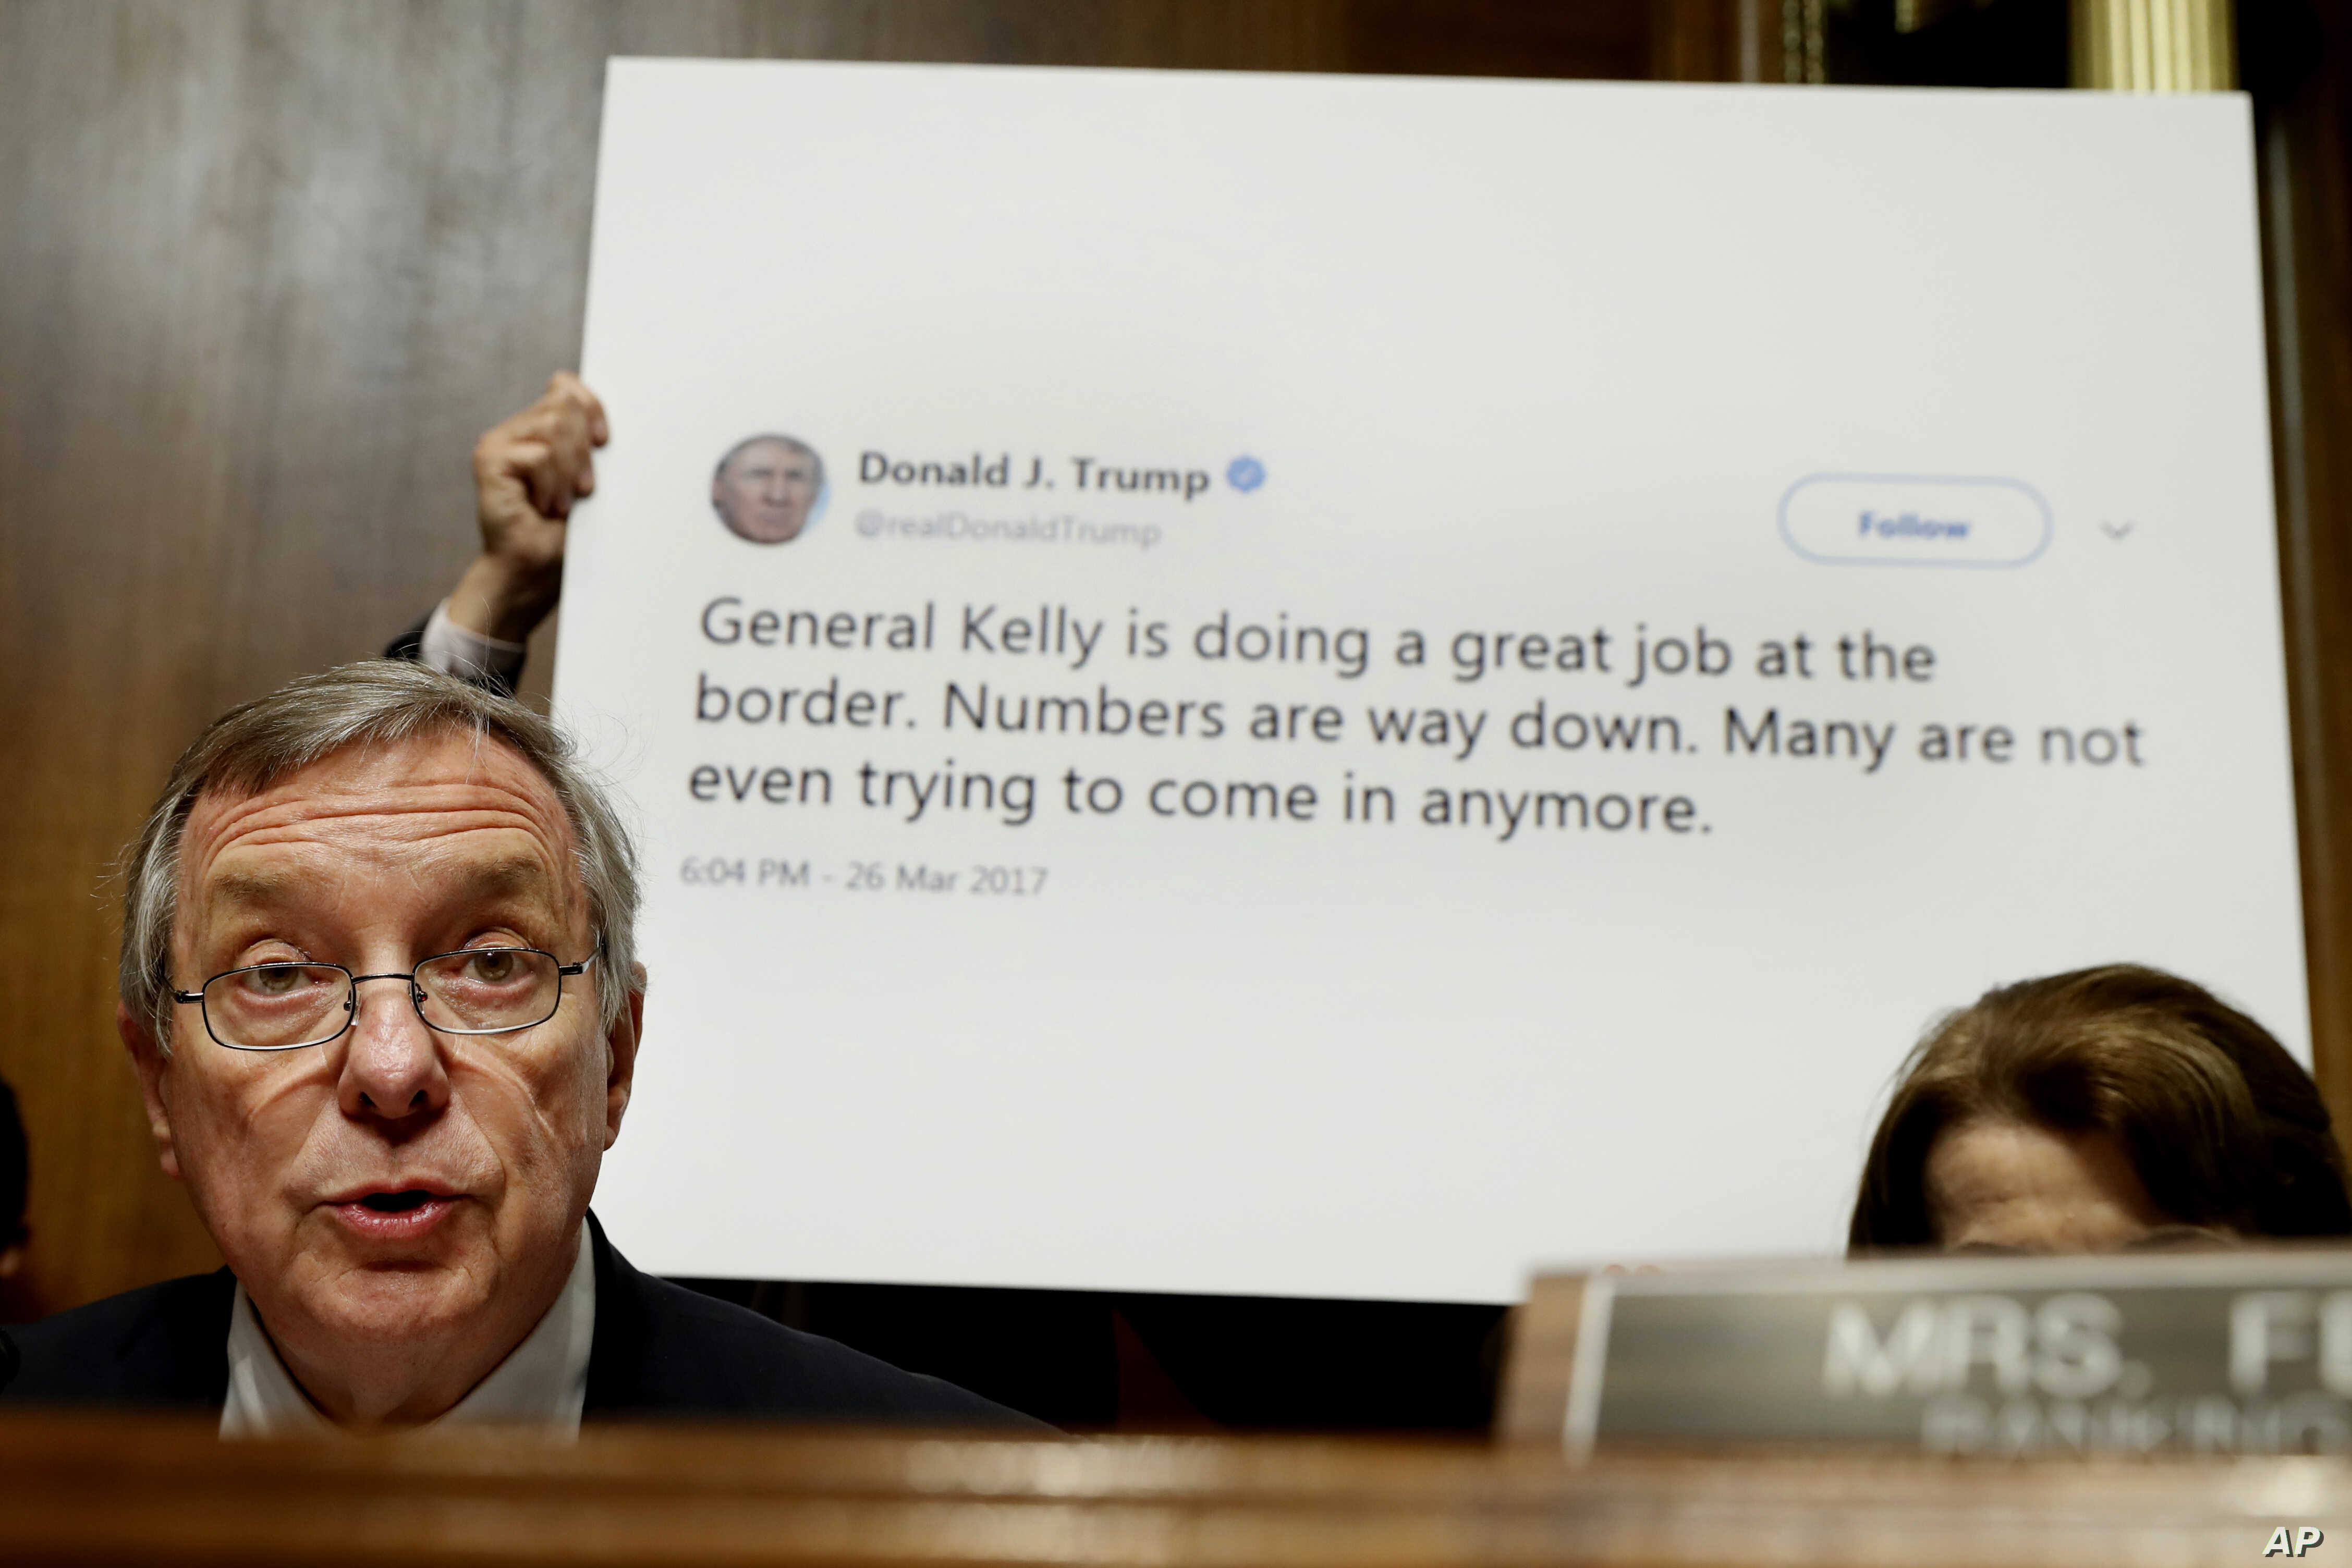 Sen. Dick Durbin, D-Ill., ranking Member of the Senate Committee on the Judiciary, Subcommittee on Border Security and Immigration, speaks while a staffer holds up a Twitter quote by President Donald Trump, during a subcommittee hearing about the bor...